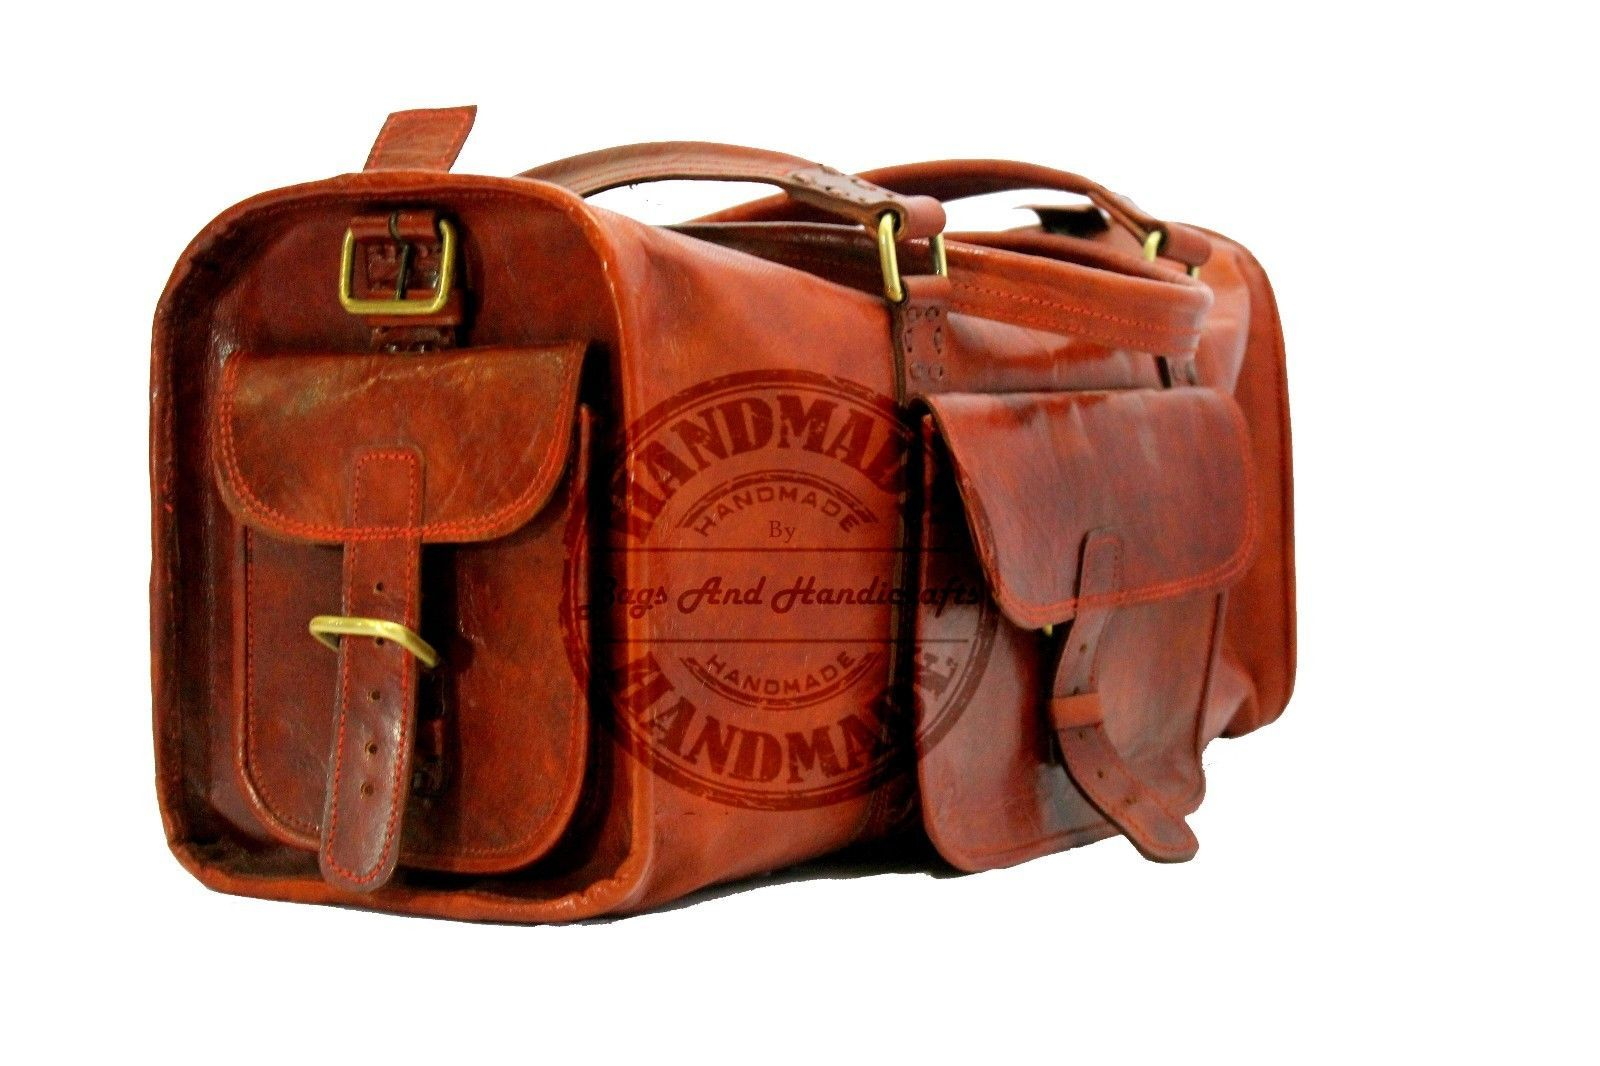 20 Best Weekenders and Duffels to Buy Now. September 4, Style: Bags Panelled Leather and Canvas Duffle Bag by Montblanc $ Continental Duffle by J.W. Hulme Co. $ Ashton Lenox Duffel Bag by Tumi $ Over $1, The Best Men's Fragrances from to Today.